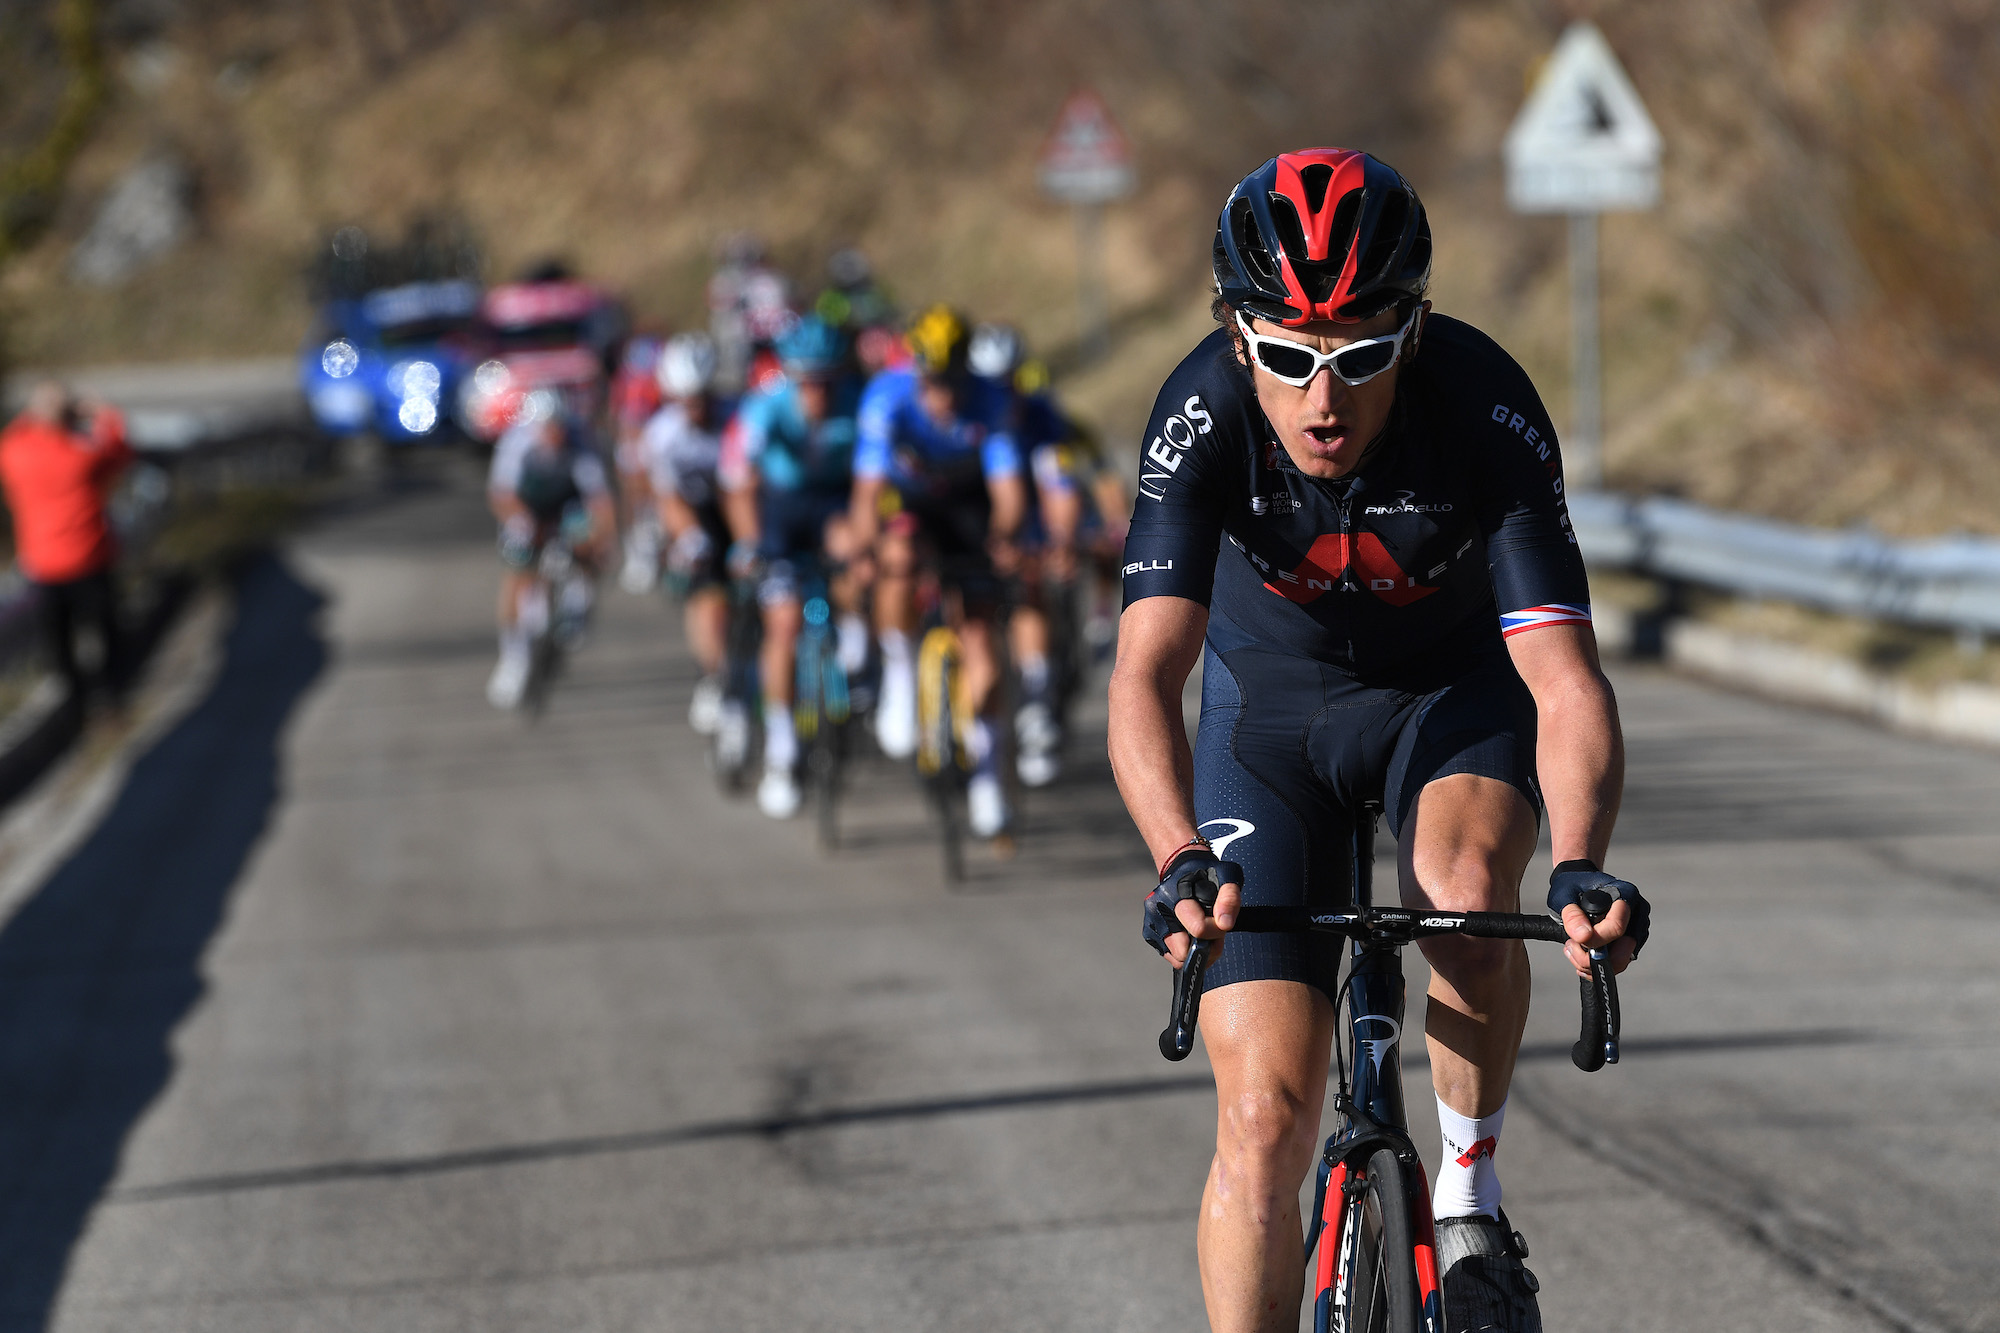 Geraint Thomas doing 'better than expected' as he hangs on to GC top 10 at Tirreno-Adriatico